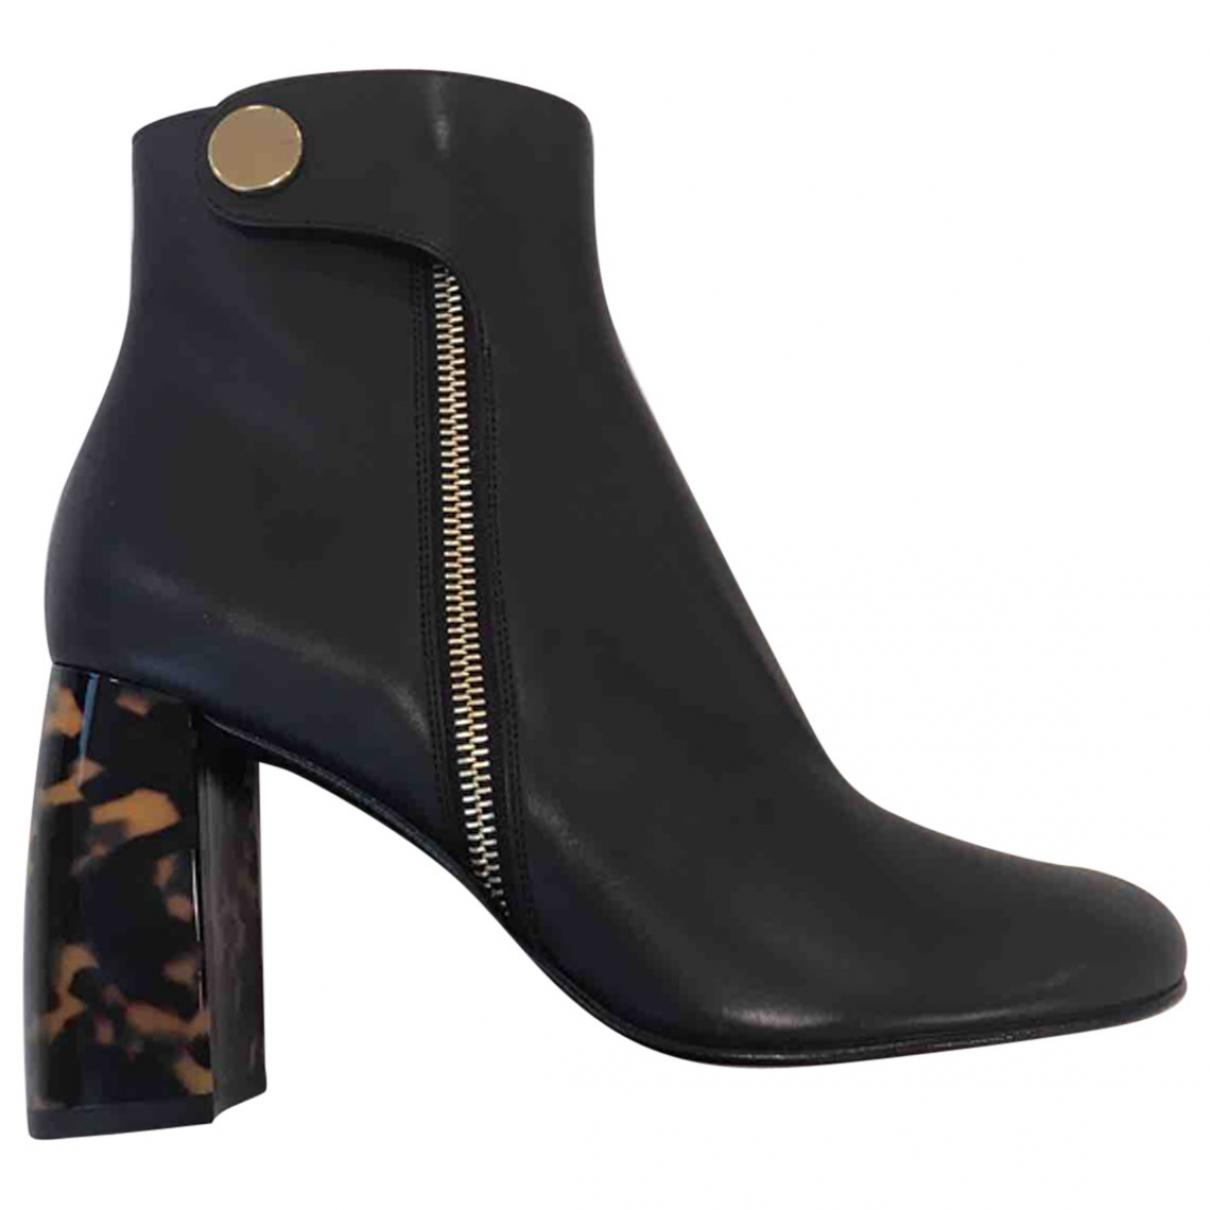 Pre-owned - Boots Stella McCartney jThrm6t